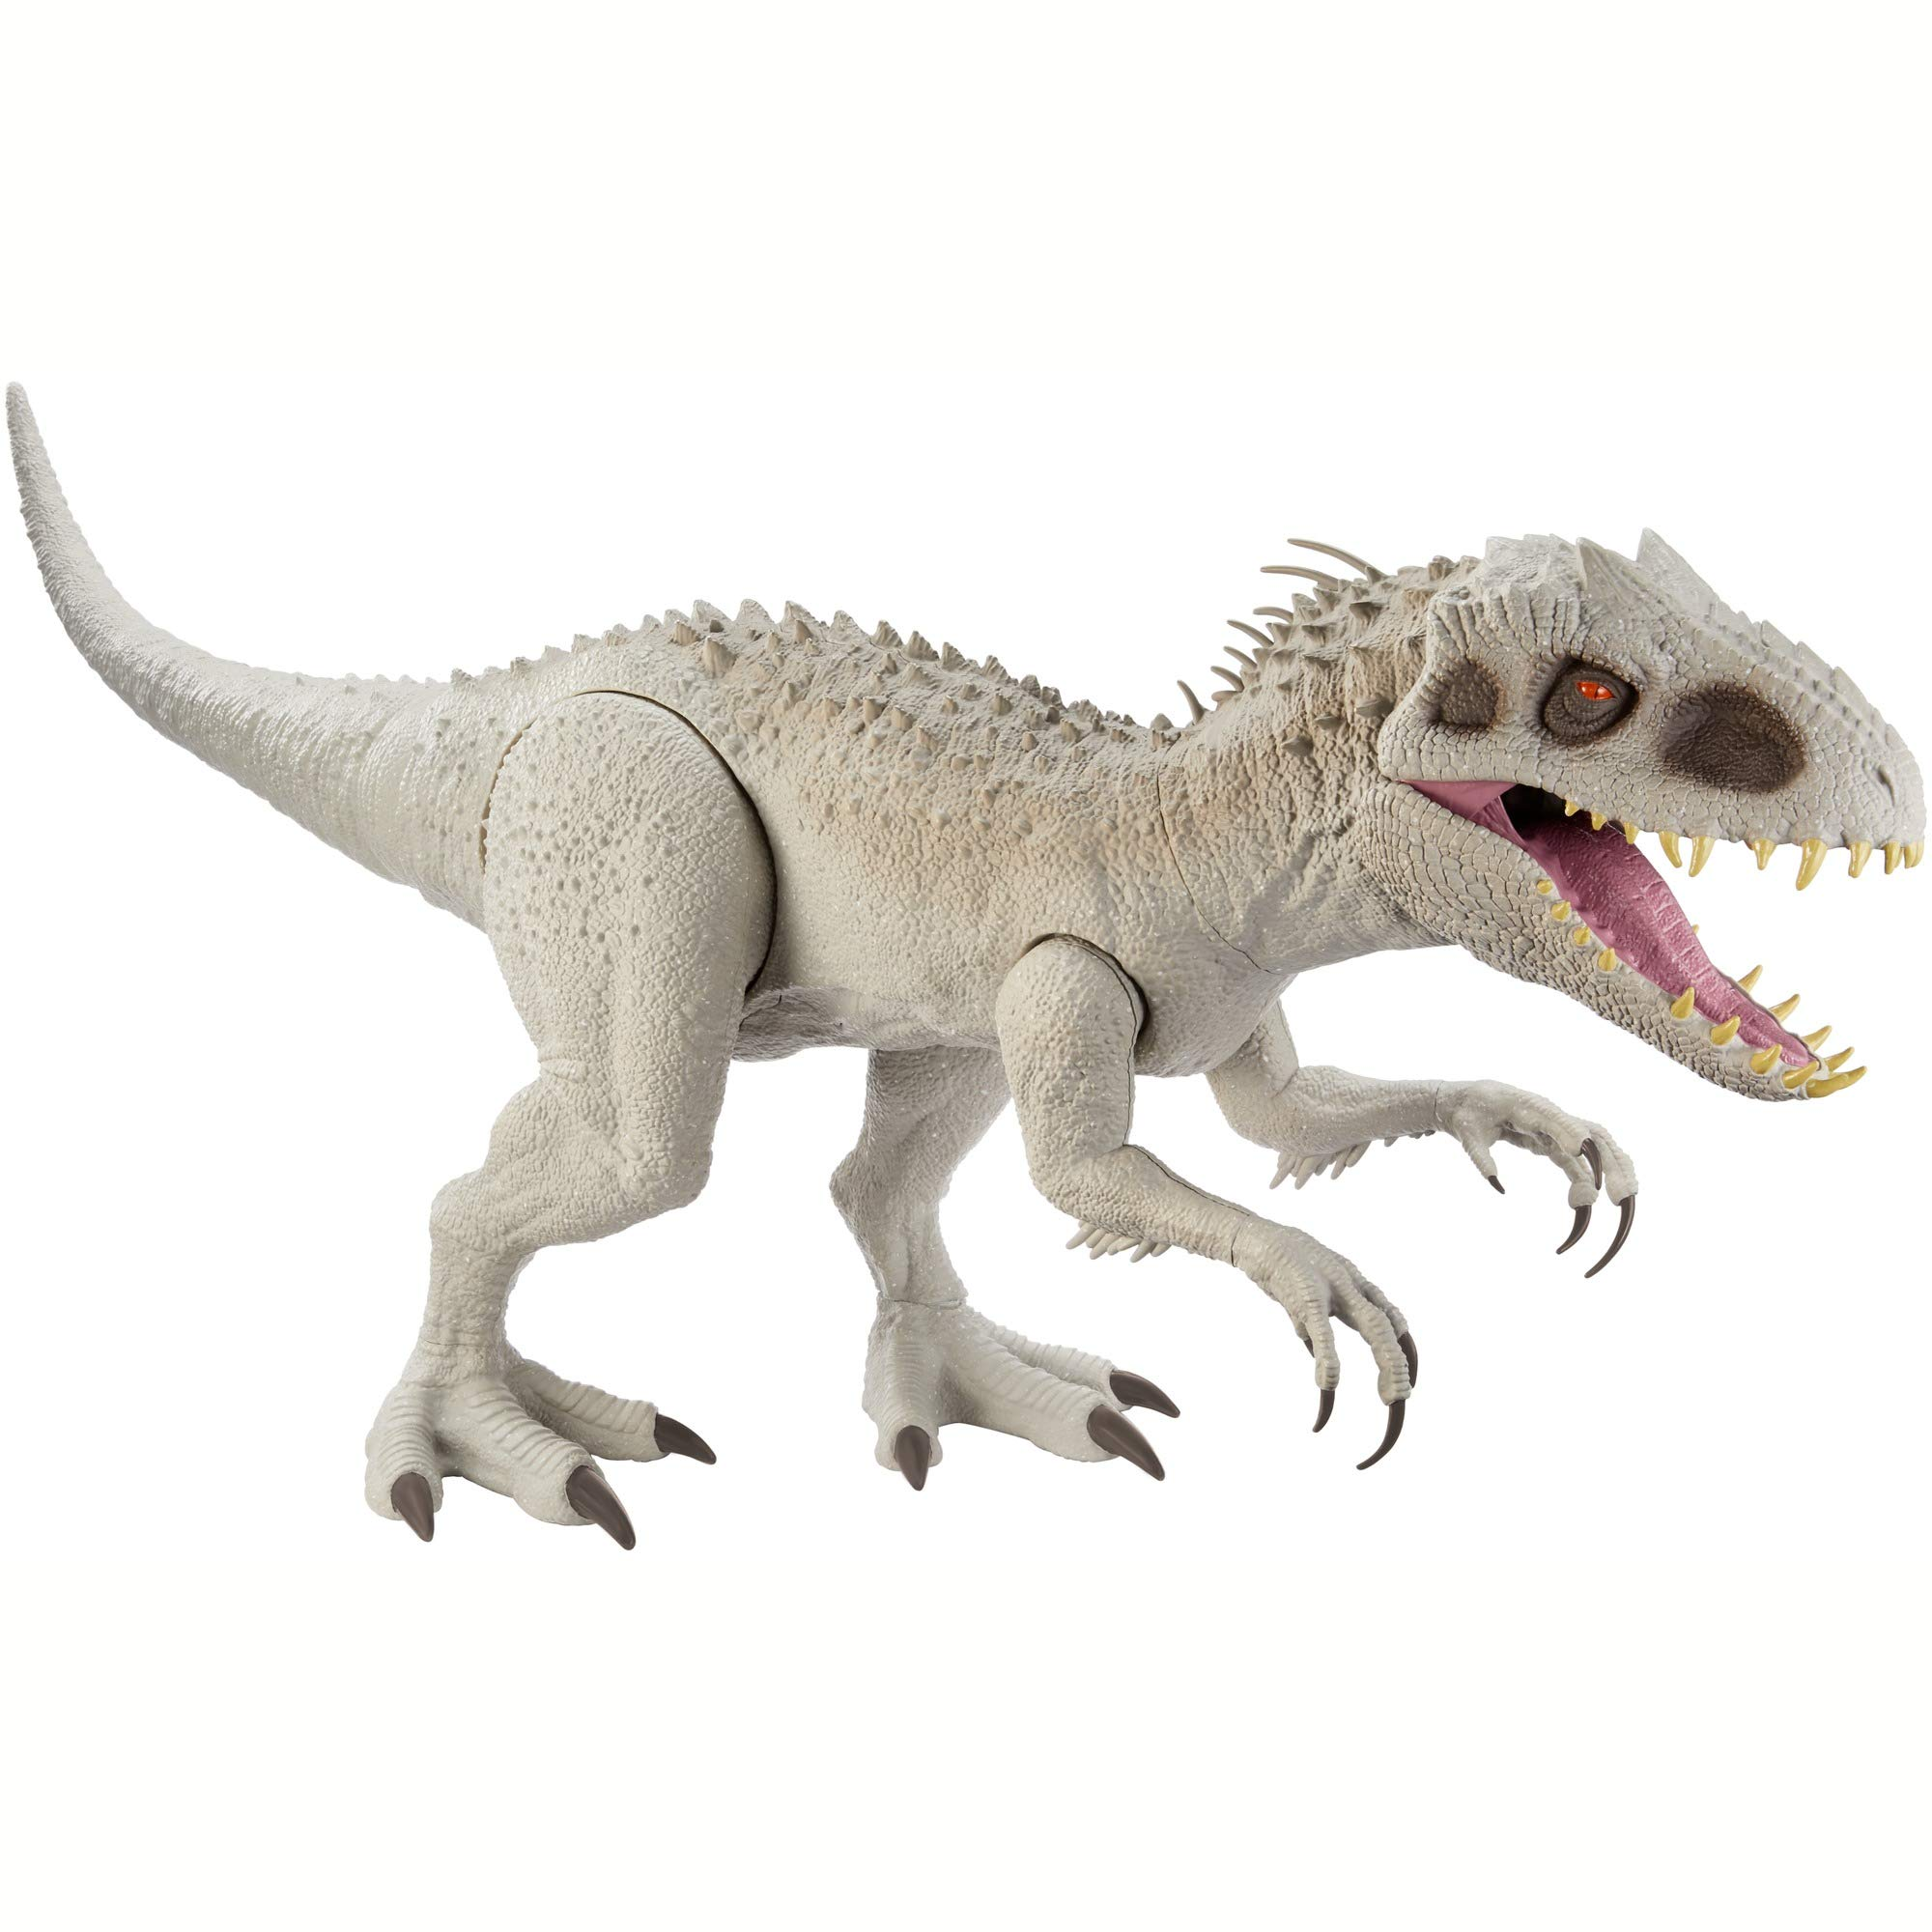 Jurassic World Camp Cretaceous Super Colossal Indominus Rex 18-in High & 3.5 Ft Long, Movable Arms & Legs, Swallows 20 Mini Action Figures, 4 Years Old & Up